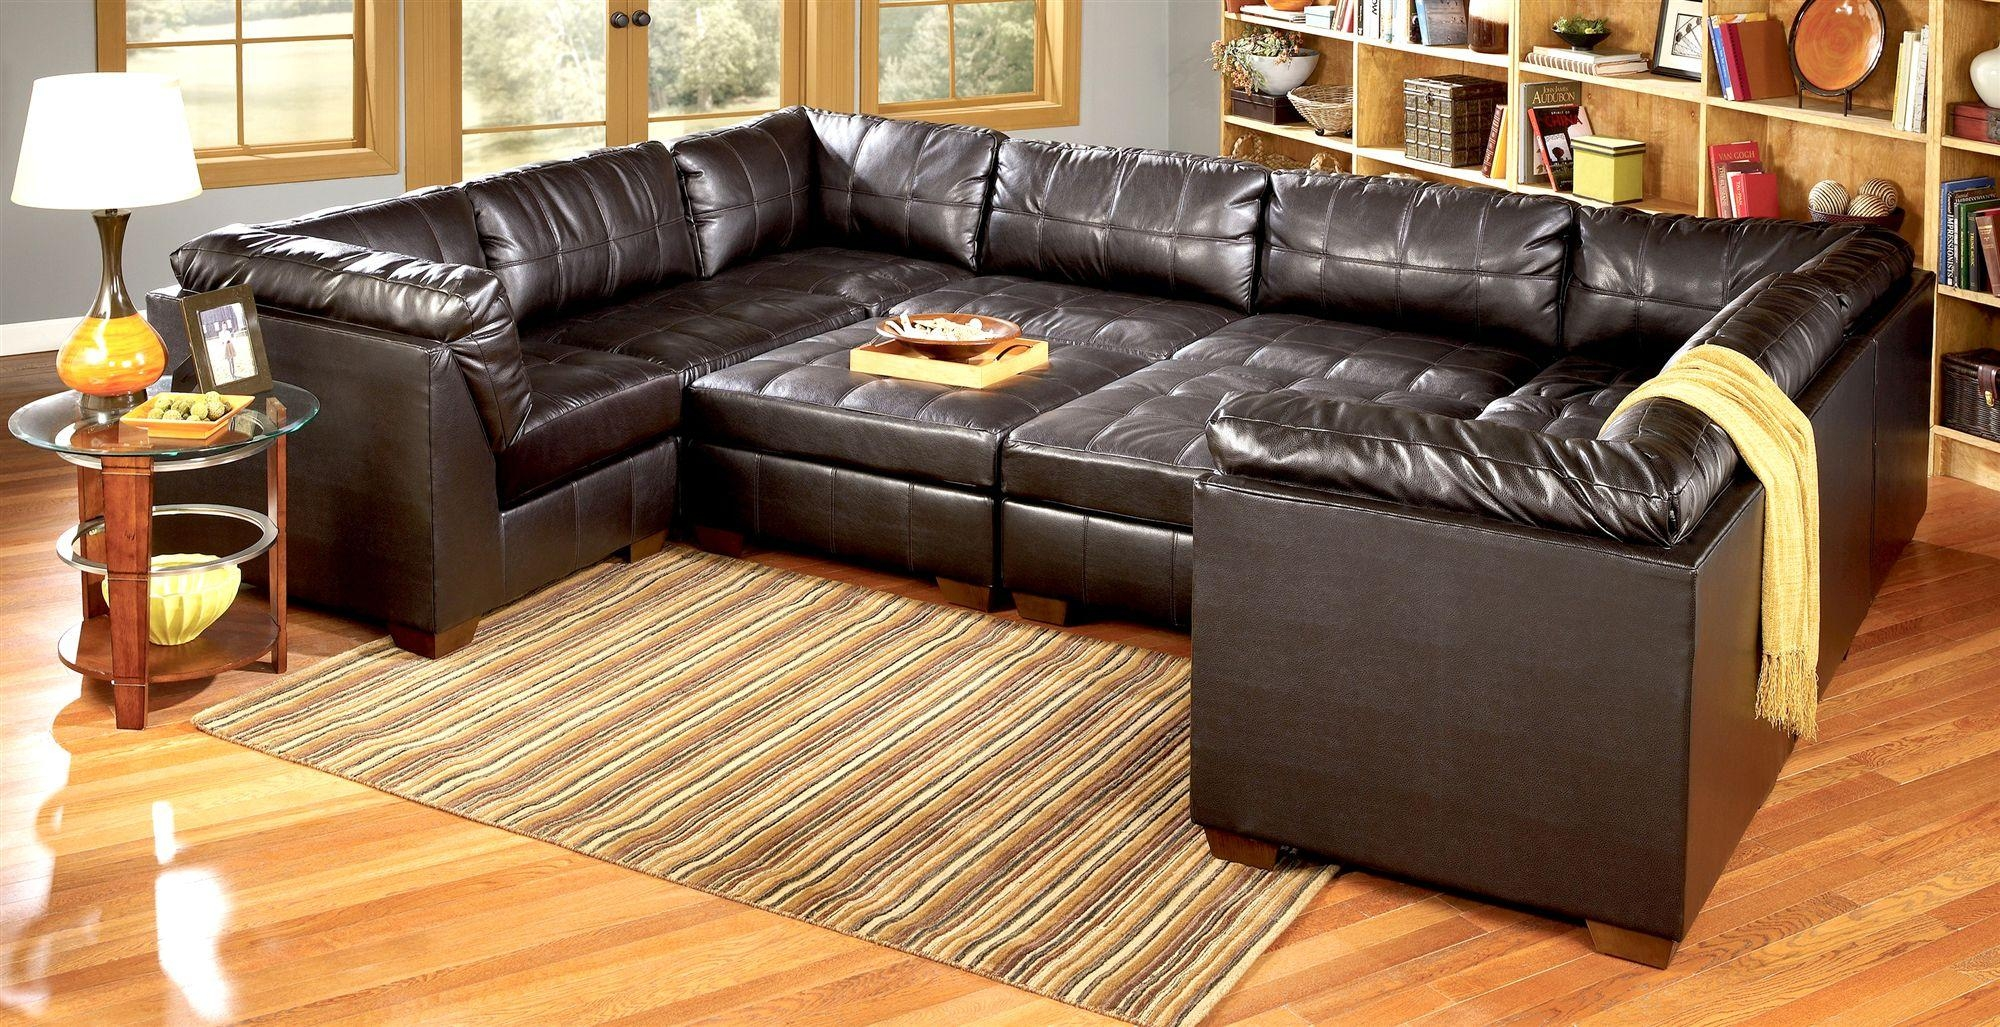 High Back Sectional Sofas | Olsonware Sofa Cleaners Ikea Stockholm Within Wide Seat Sectional Sofas (Image 13 of 20)